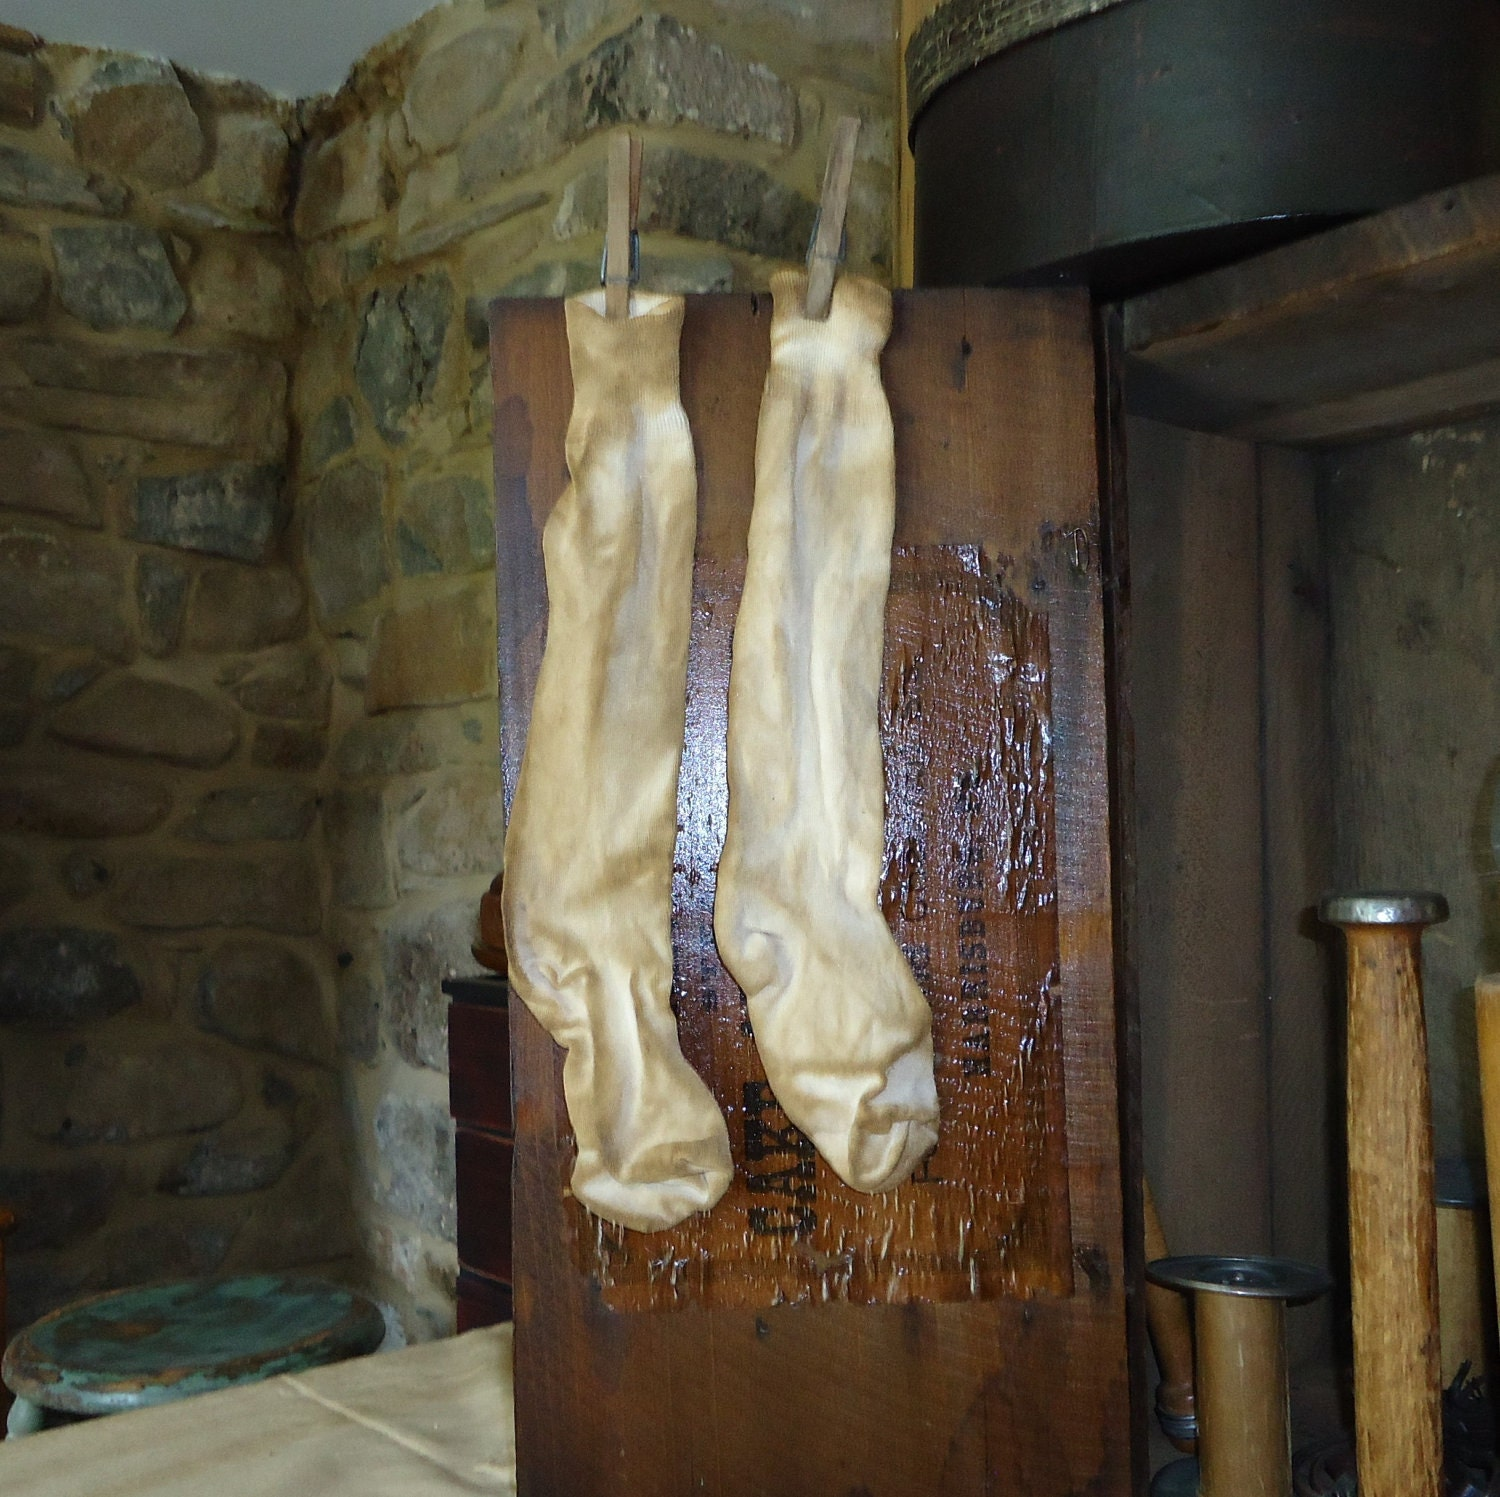 Laundry Room Decor Country Primitive Home Stockings. By